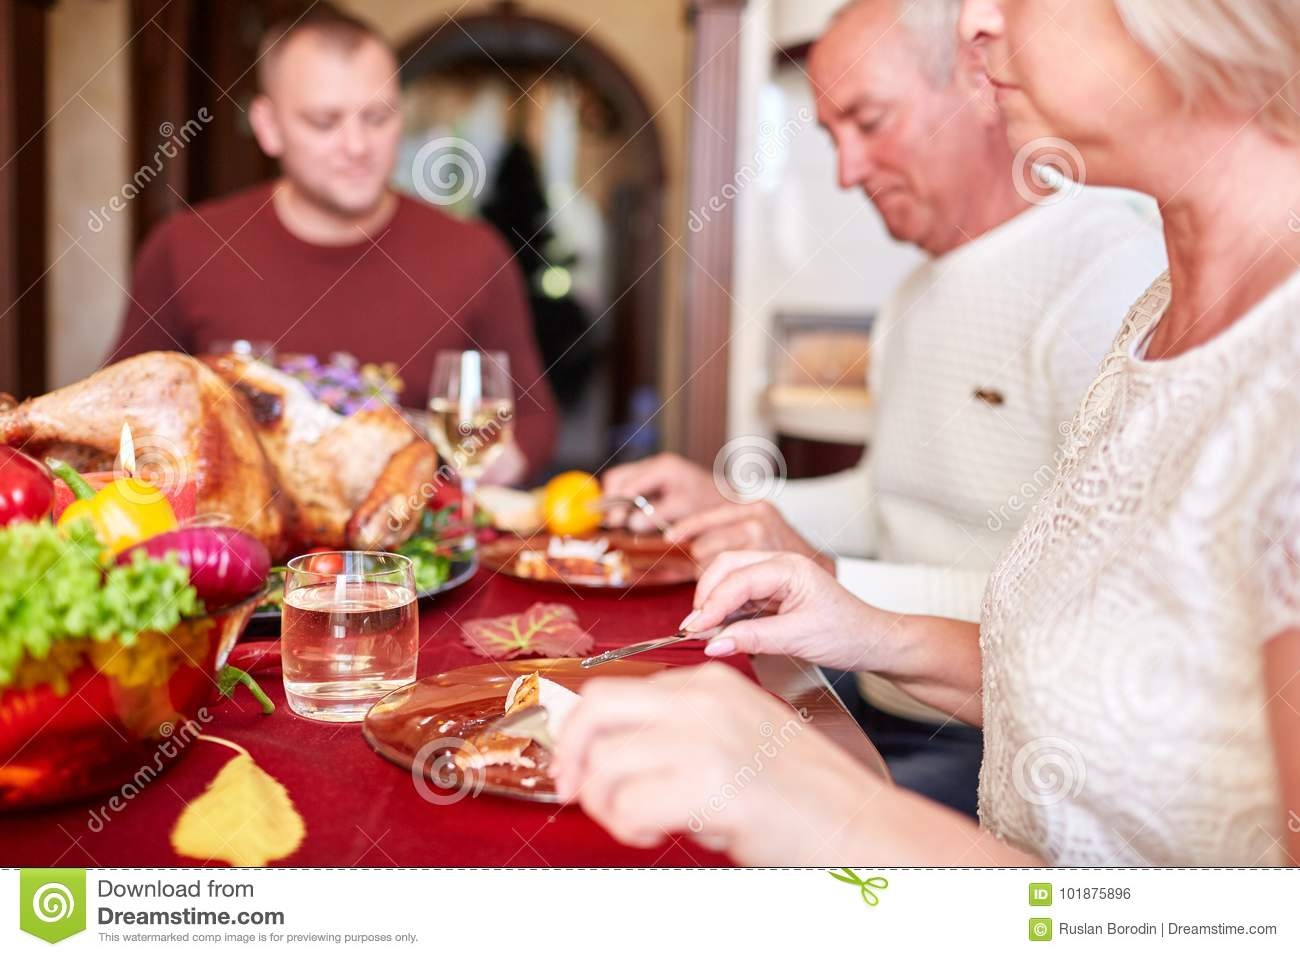 Happy family dining on Christmas on a blurred festive background. Celebrating Thanksgiving concept. Happy new year.